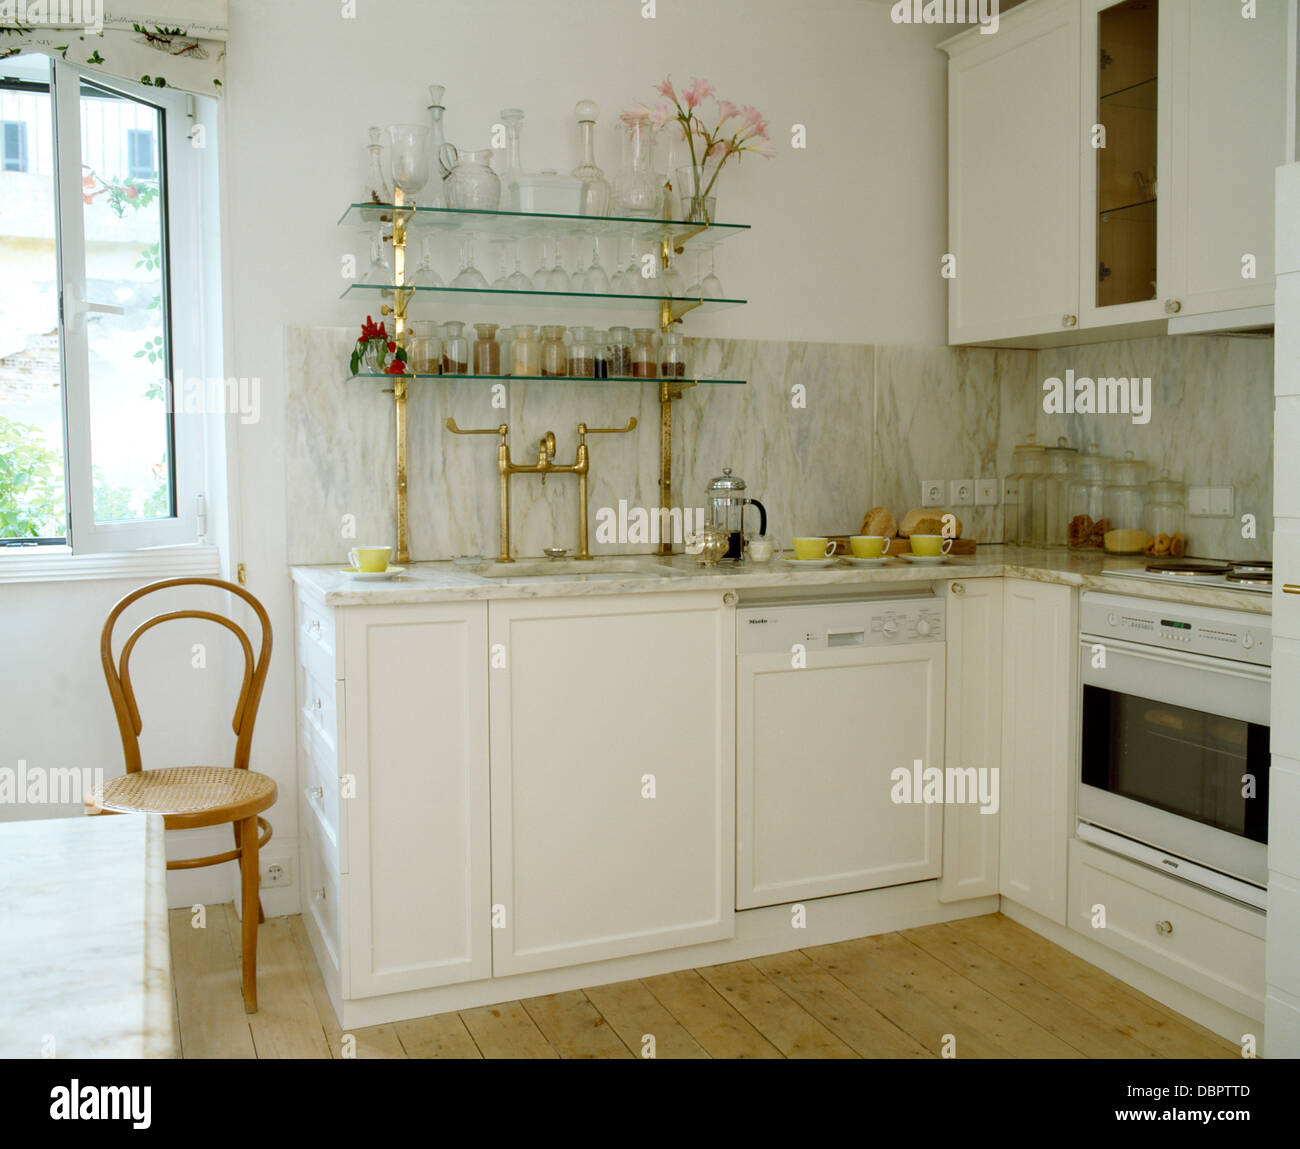 Exceptionnel Glassware On Glass Shelves In White Coastal Kitchen With Antique Bentwood  Chair And Fitted Dishwasher And Oven